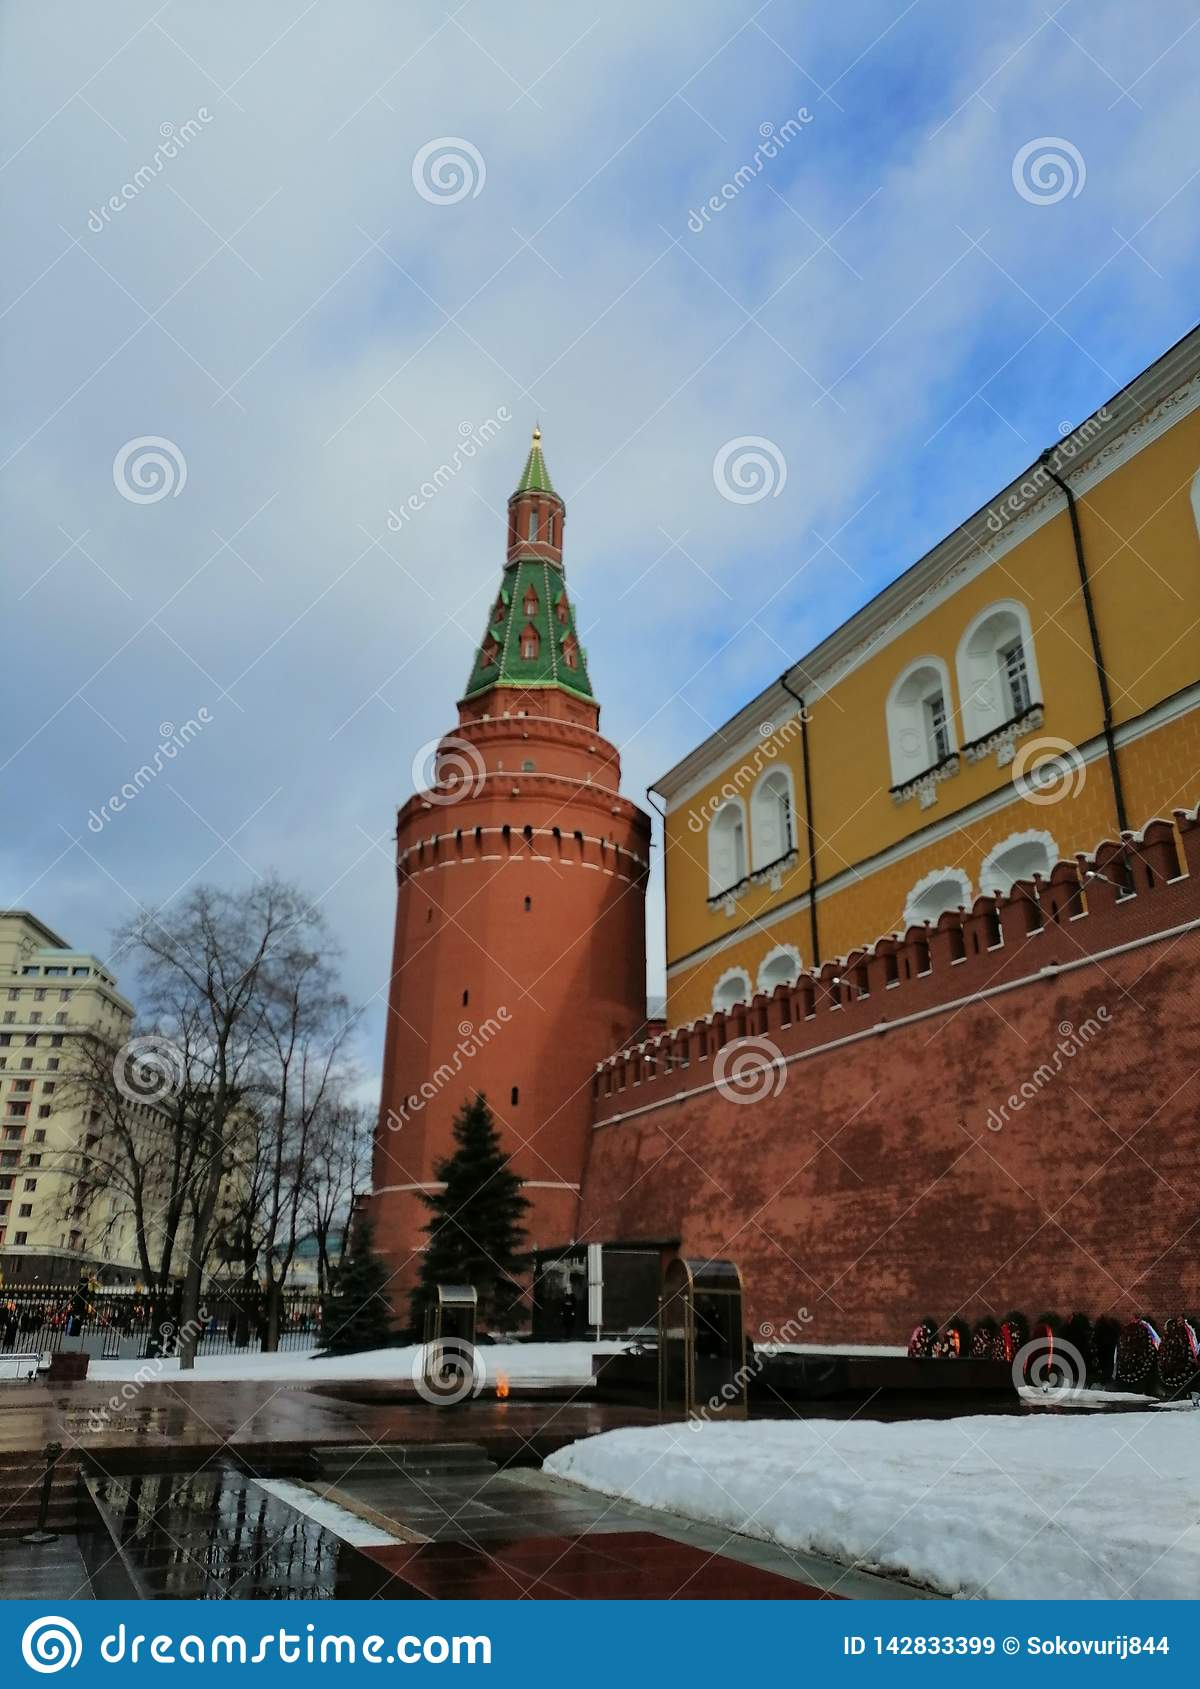 The eternal flame on the background of the Kremlin  towers